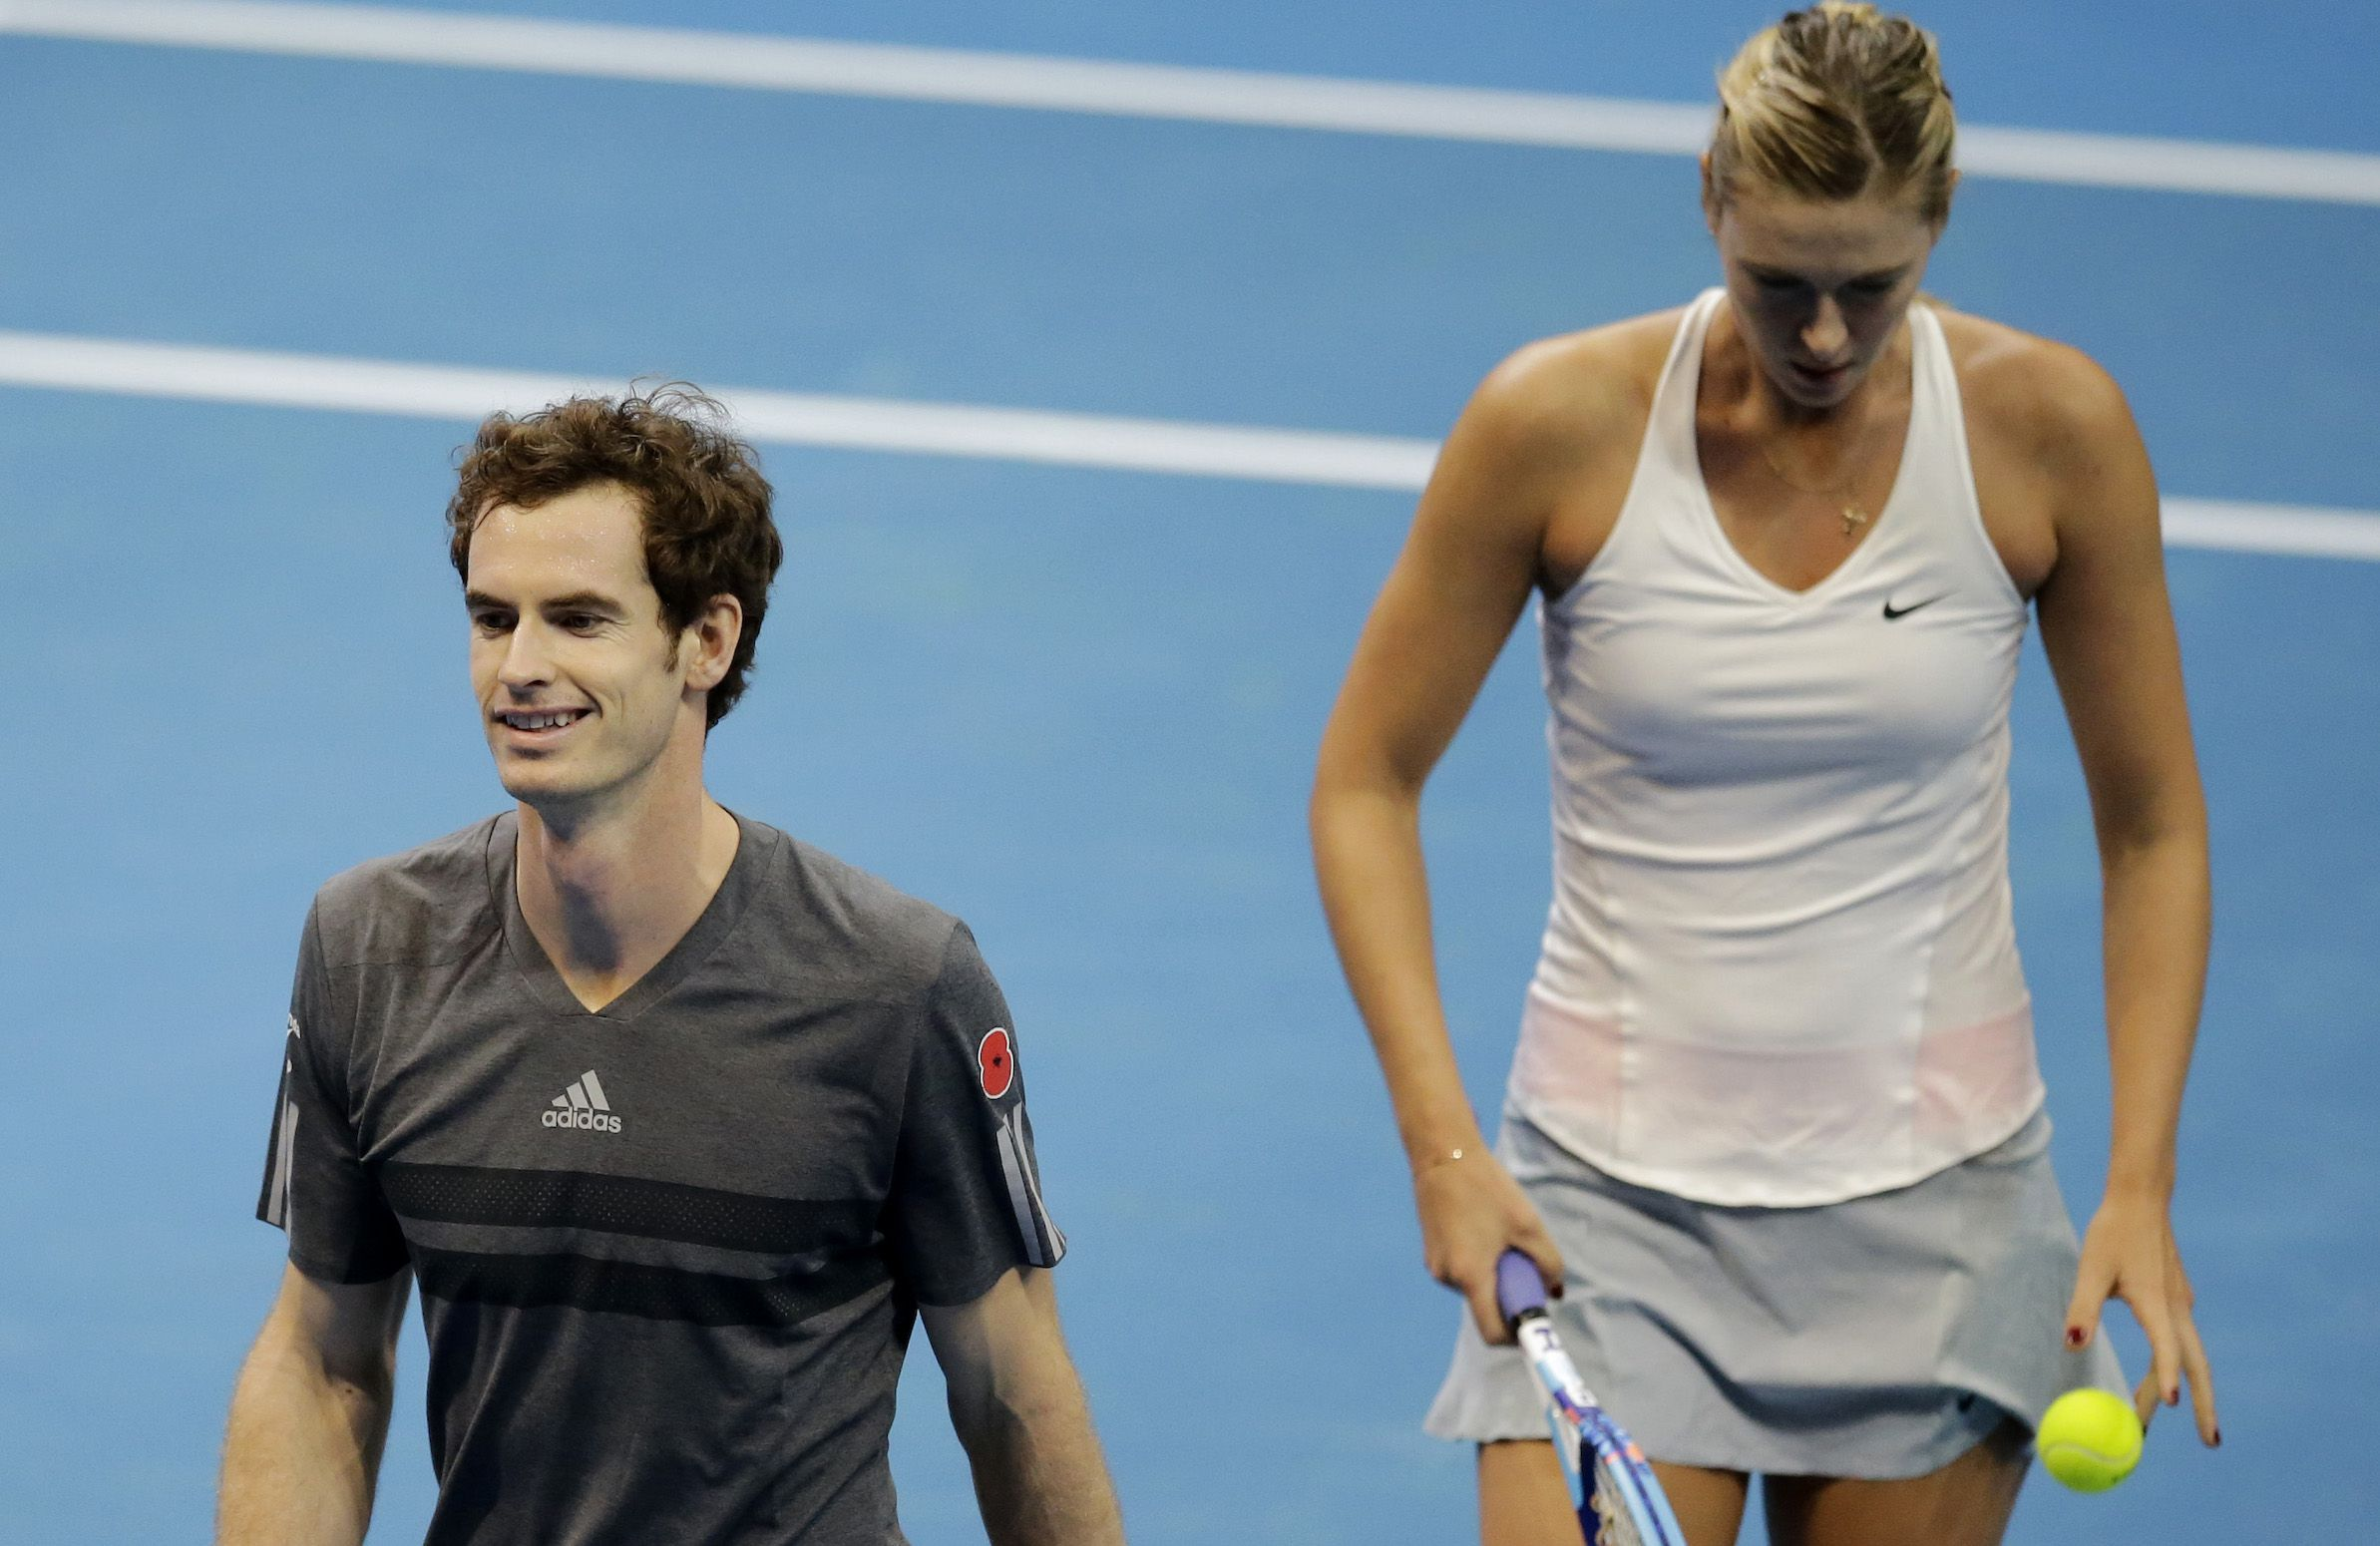 Andy Murray, left, and Maria Sharapova of the Manila Mavericks walk to their bench after losing to Kristina Mladenovic and Nenad Zimonji of the UAE Royals, during their IPTL (International Premier Tennis League) Mixed Doubles match Friday, Nov. 28, 2014 at the Mall of Asia Arena at suburban Pasay city, south of Manila, Philippines. The IPTL, featuring four teams, introduces a new format in tennis and a chance for a championship prize of $1-million dollars. (AP Photo/Bullit Marquez)